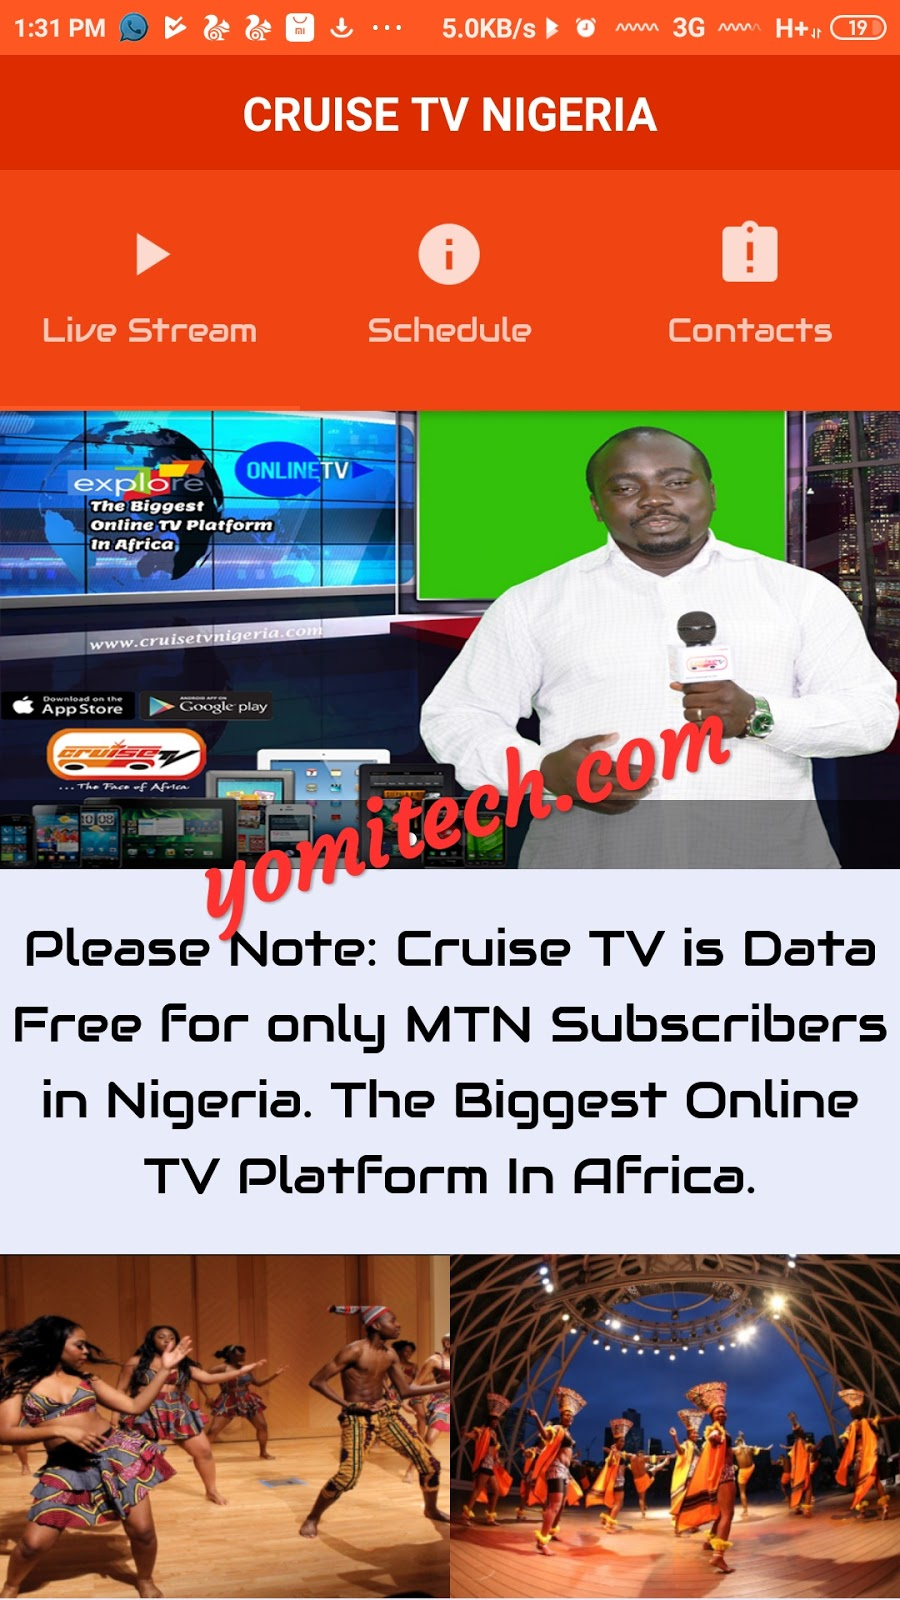 Stream Live TV Shows For Free On Cruise TV App With MTN